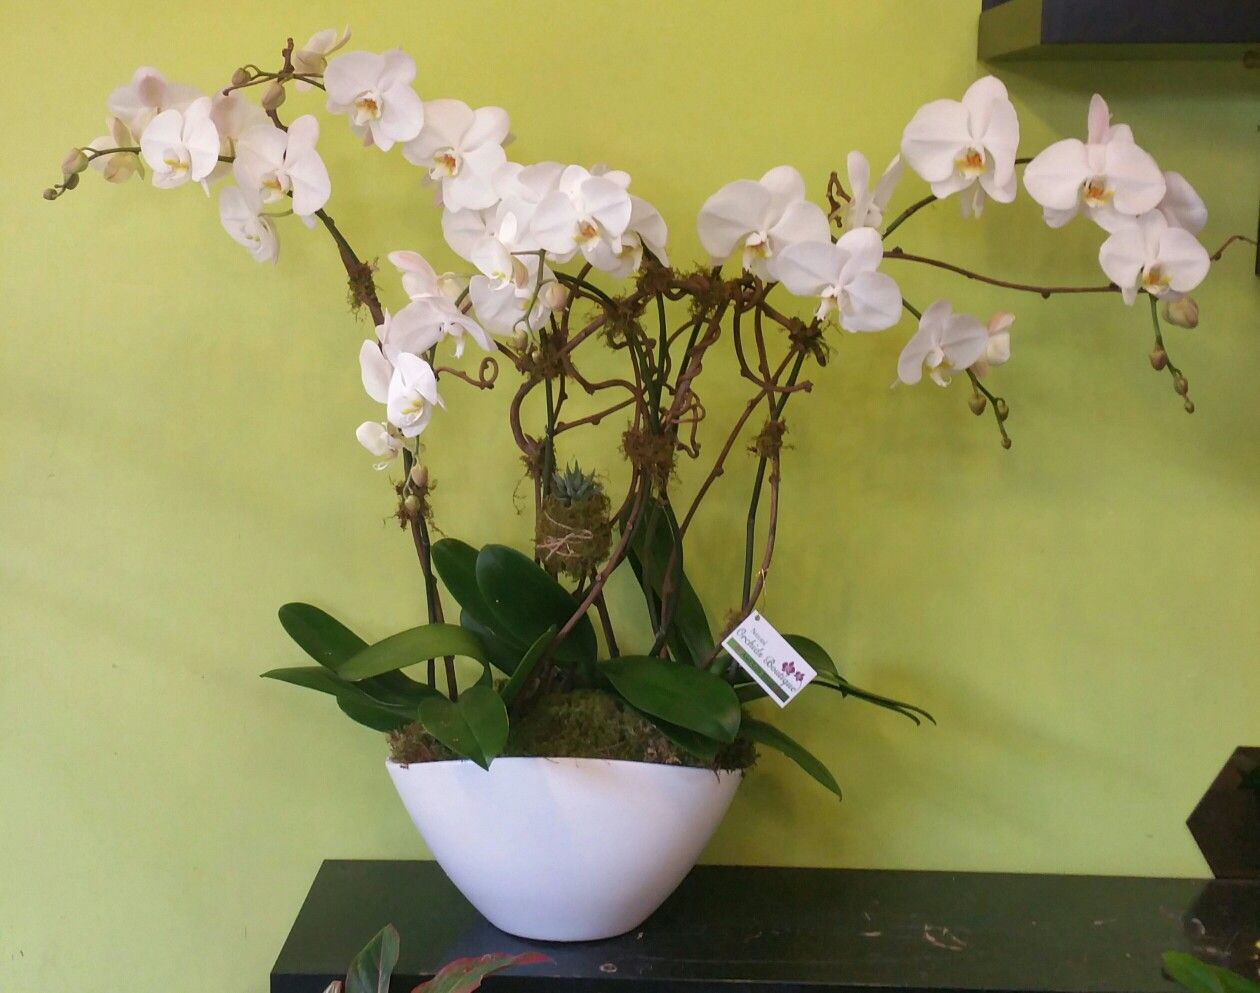 White Phalenopsis Orchid Arrangement On A White Ceramic Vase Beautiful Orchids Orchid Arrangements Orchids